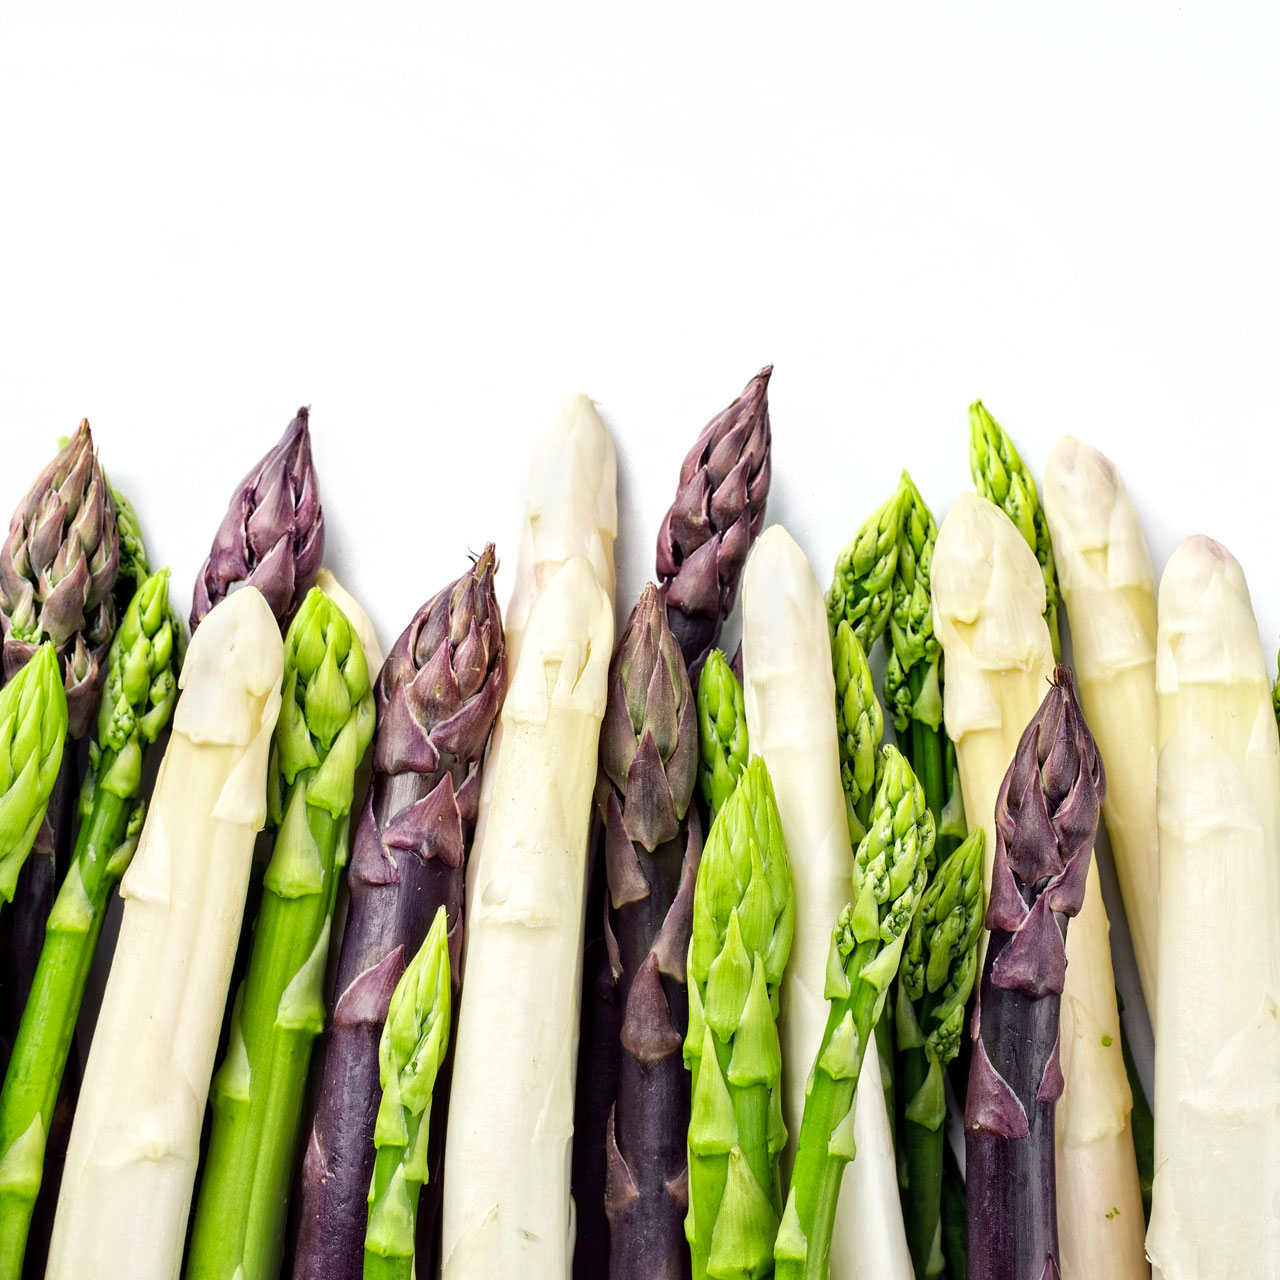 Au printemps on cuisine l'asperge